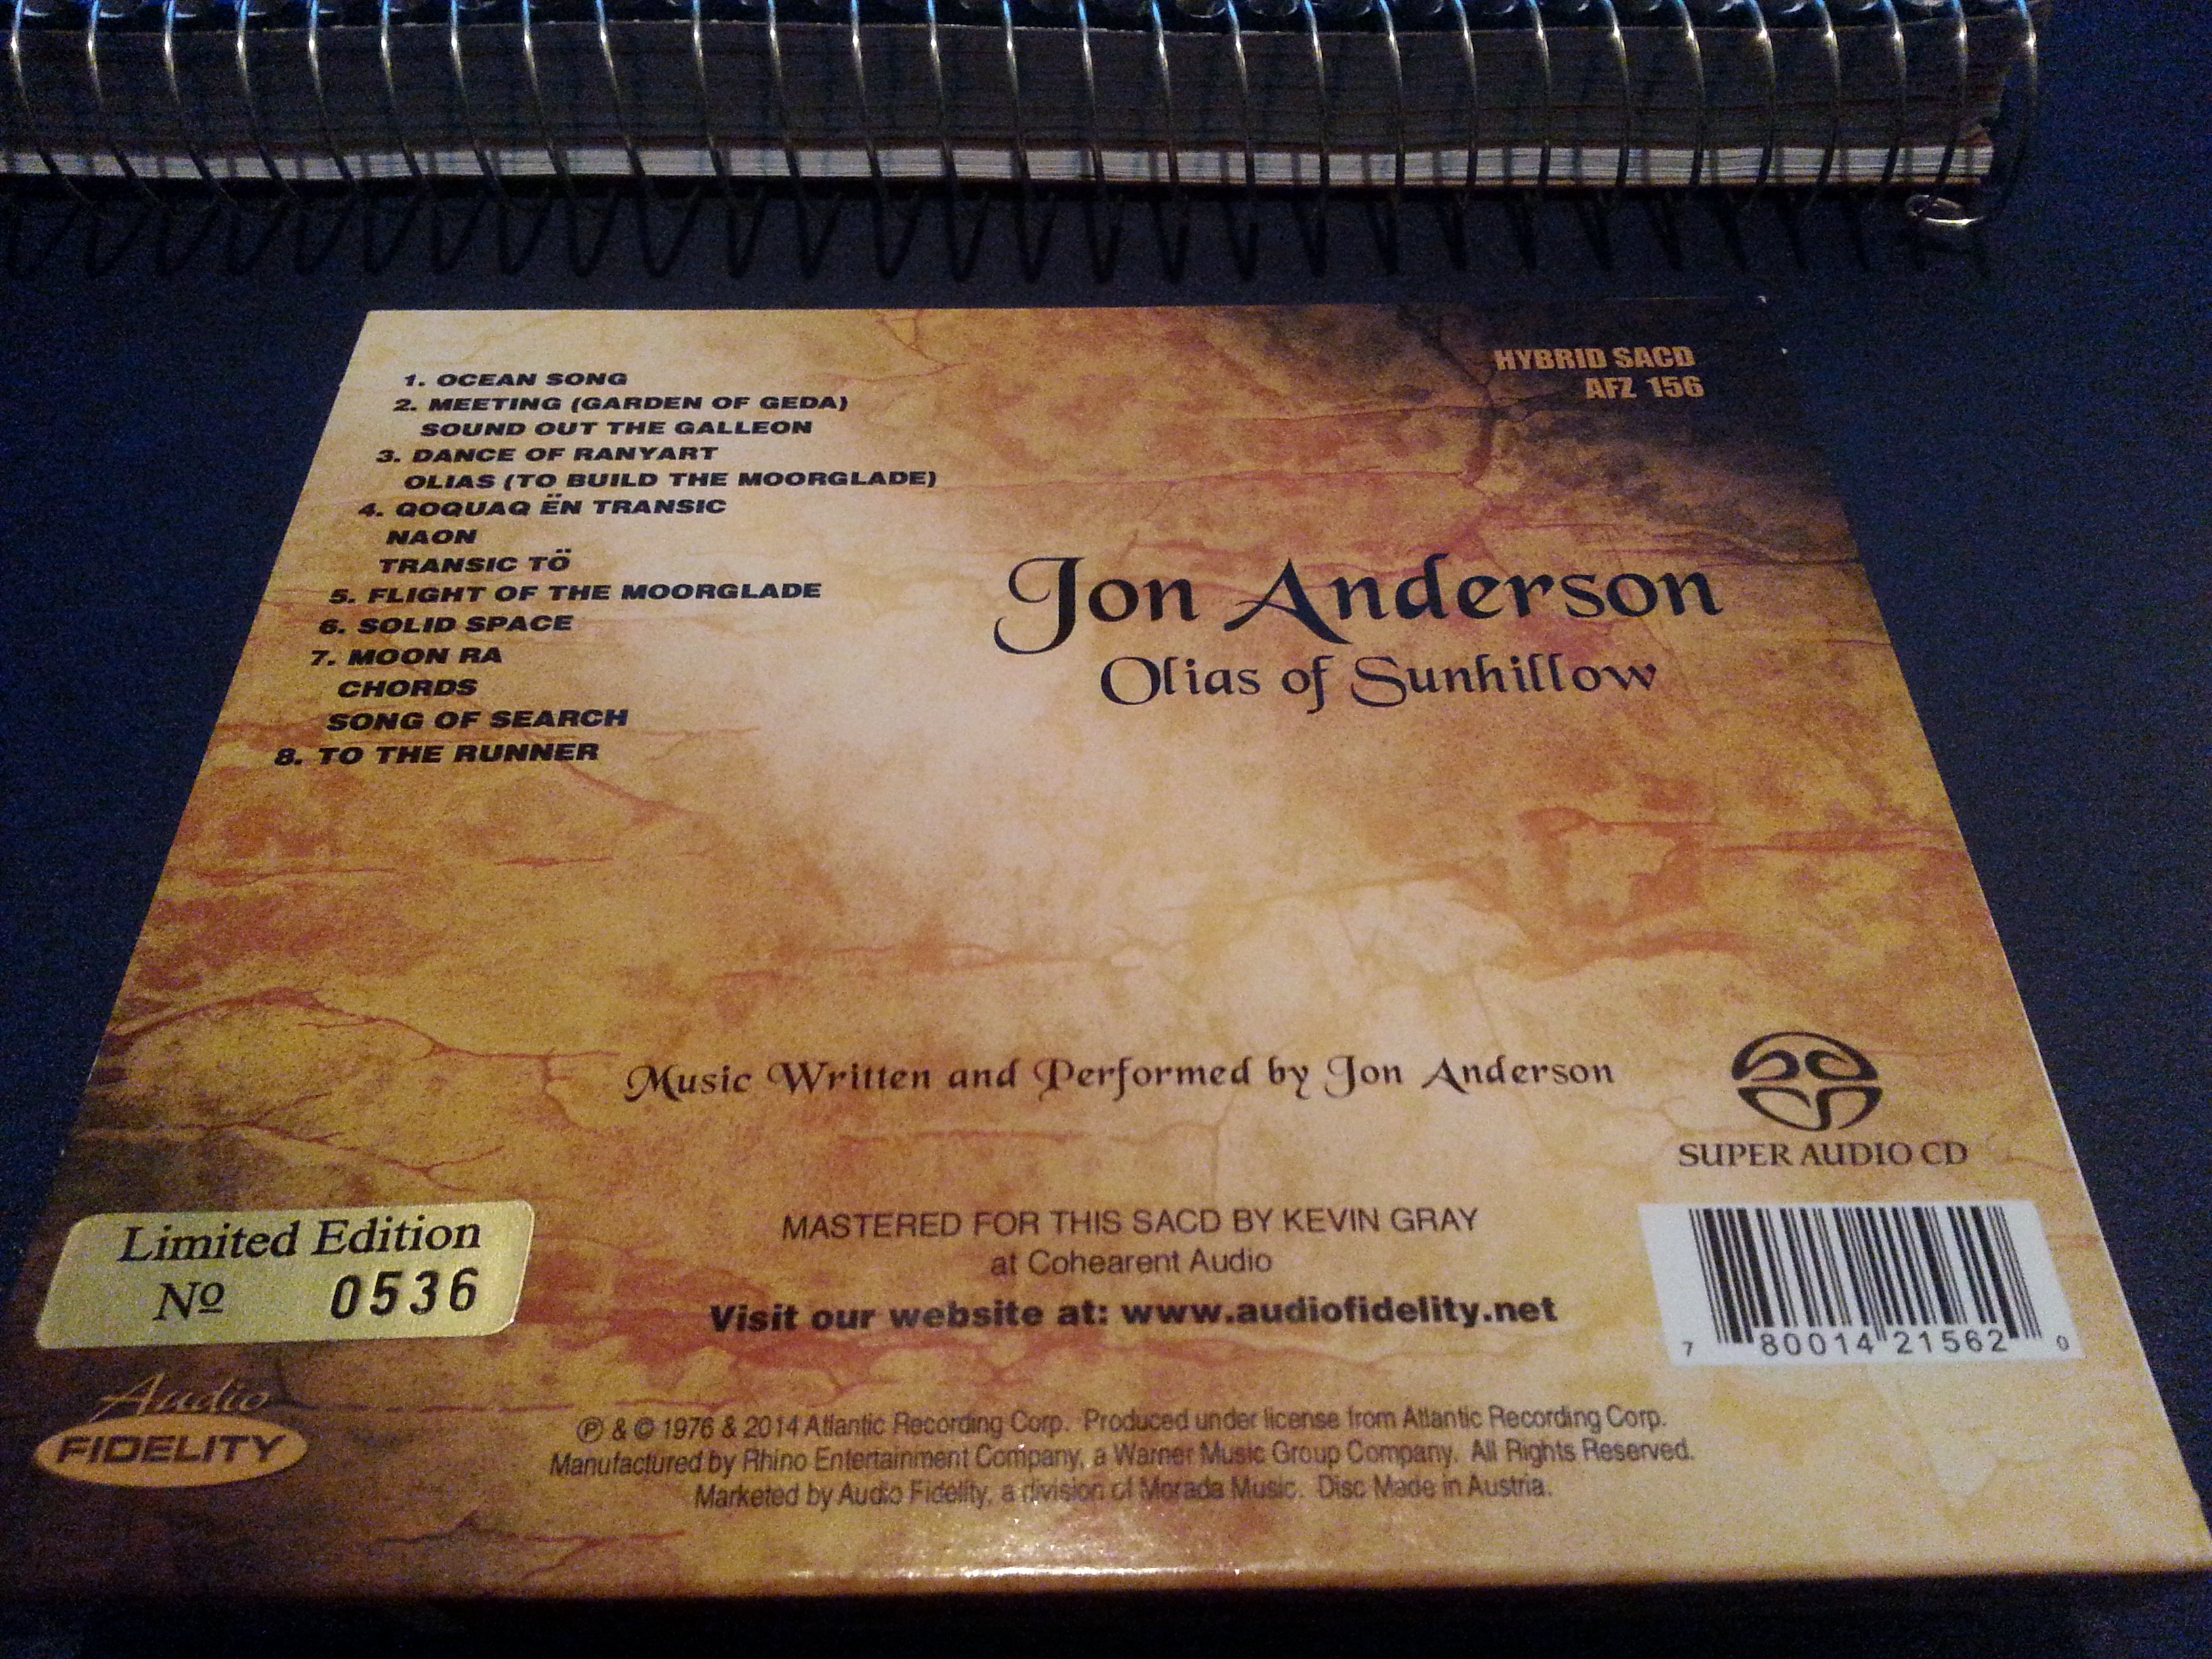 Olias of Sunhillow by Jon Anderson – 254 – Yes Music Podcast